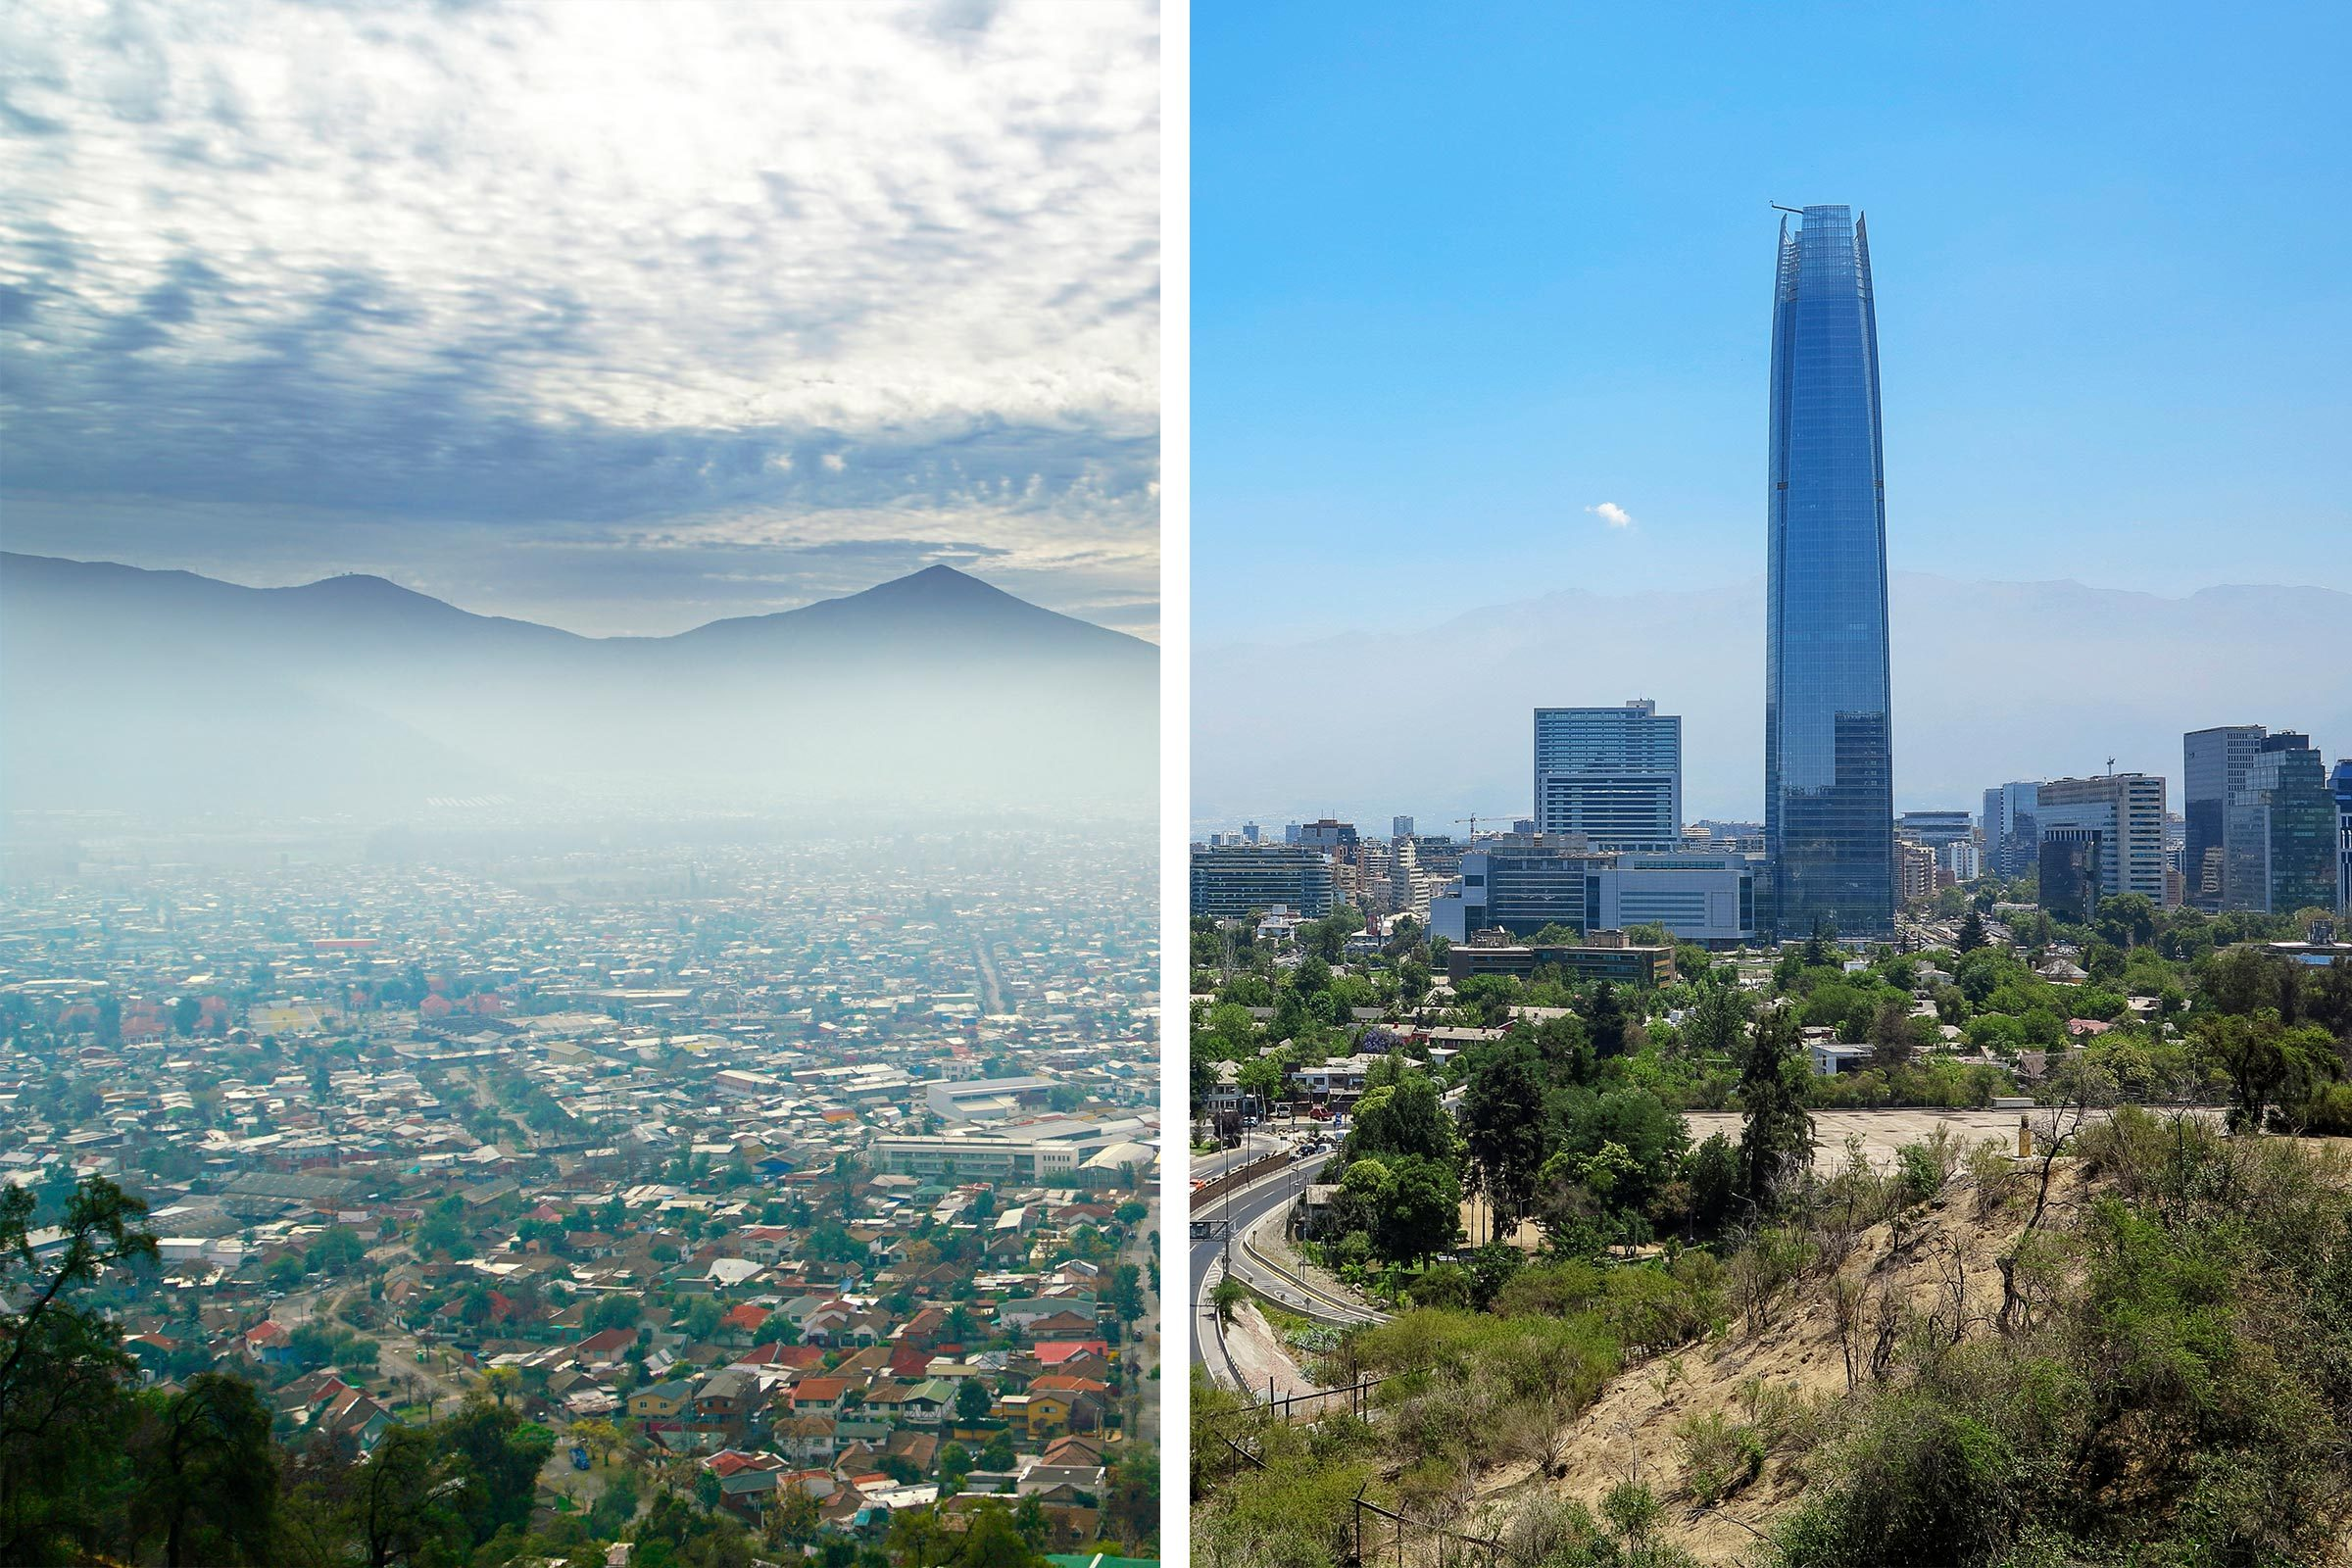 Before/After Santiago